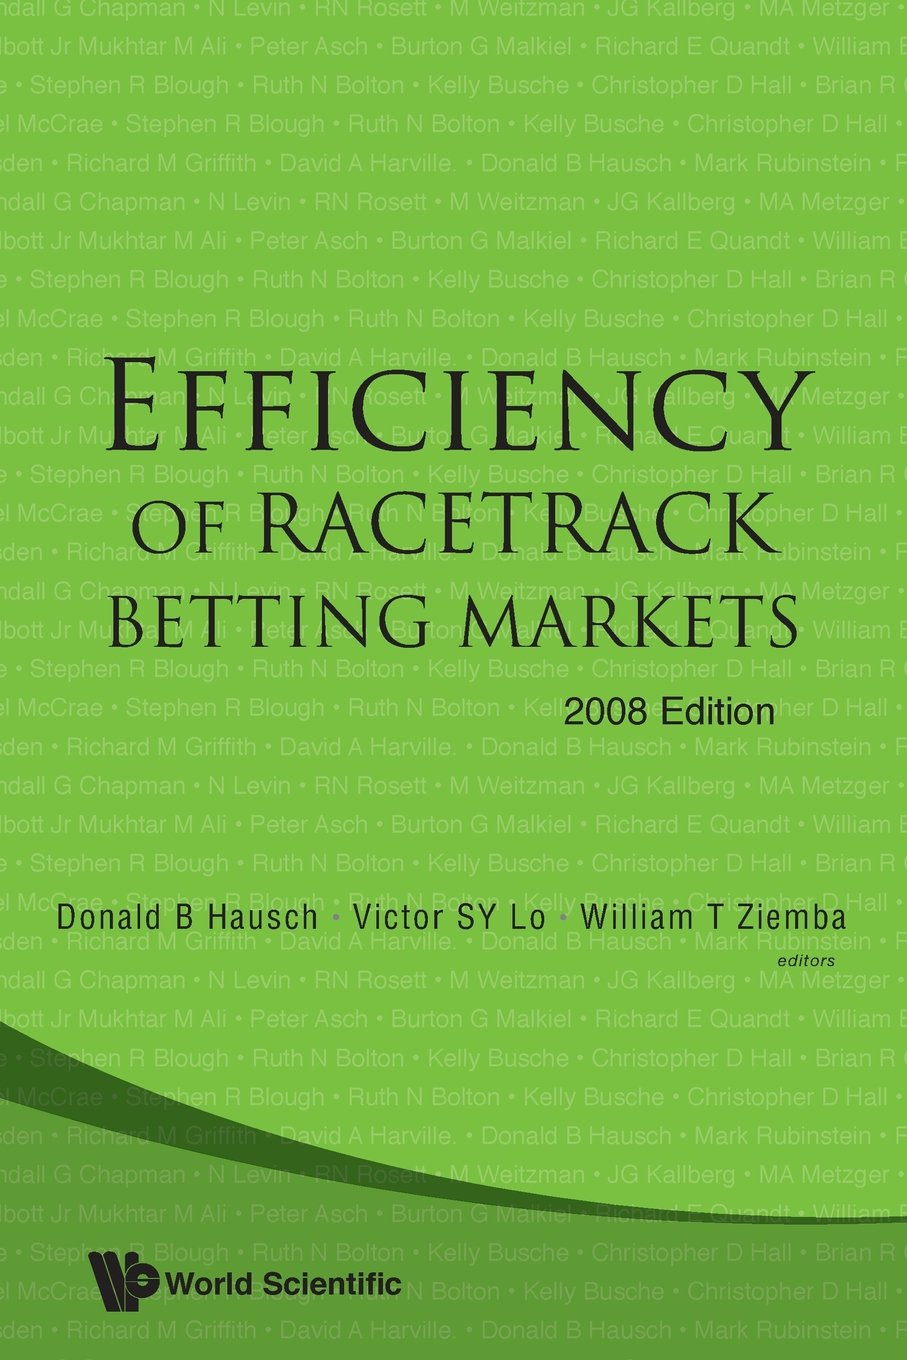 Download EFFICIENCY OF RACETRACK BETTING MARKETS (2008 EDITION) (World Scientific Handbook in Financial Economics) PDF